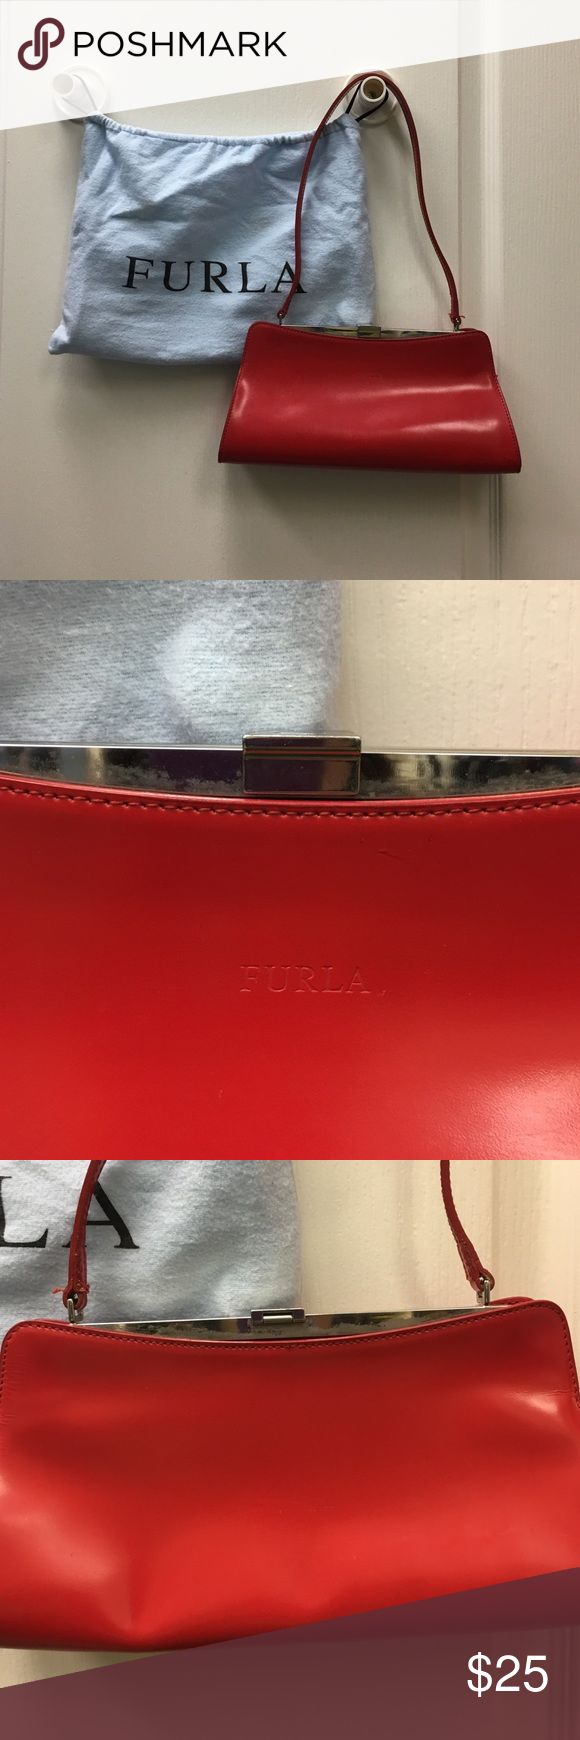 Perfect Furla bag for partying on New Years Eve! Gorgeous, 💄red color.  Good used condition. Bought from another posher as an impulse buy last month. Some wear on the hardware as seen in pictures, as well as a few marks on the bottom right.  A perfect bag for a night on the town on New Years Eve!  🎉 🎉 Furla Bags Shoulder Bags